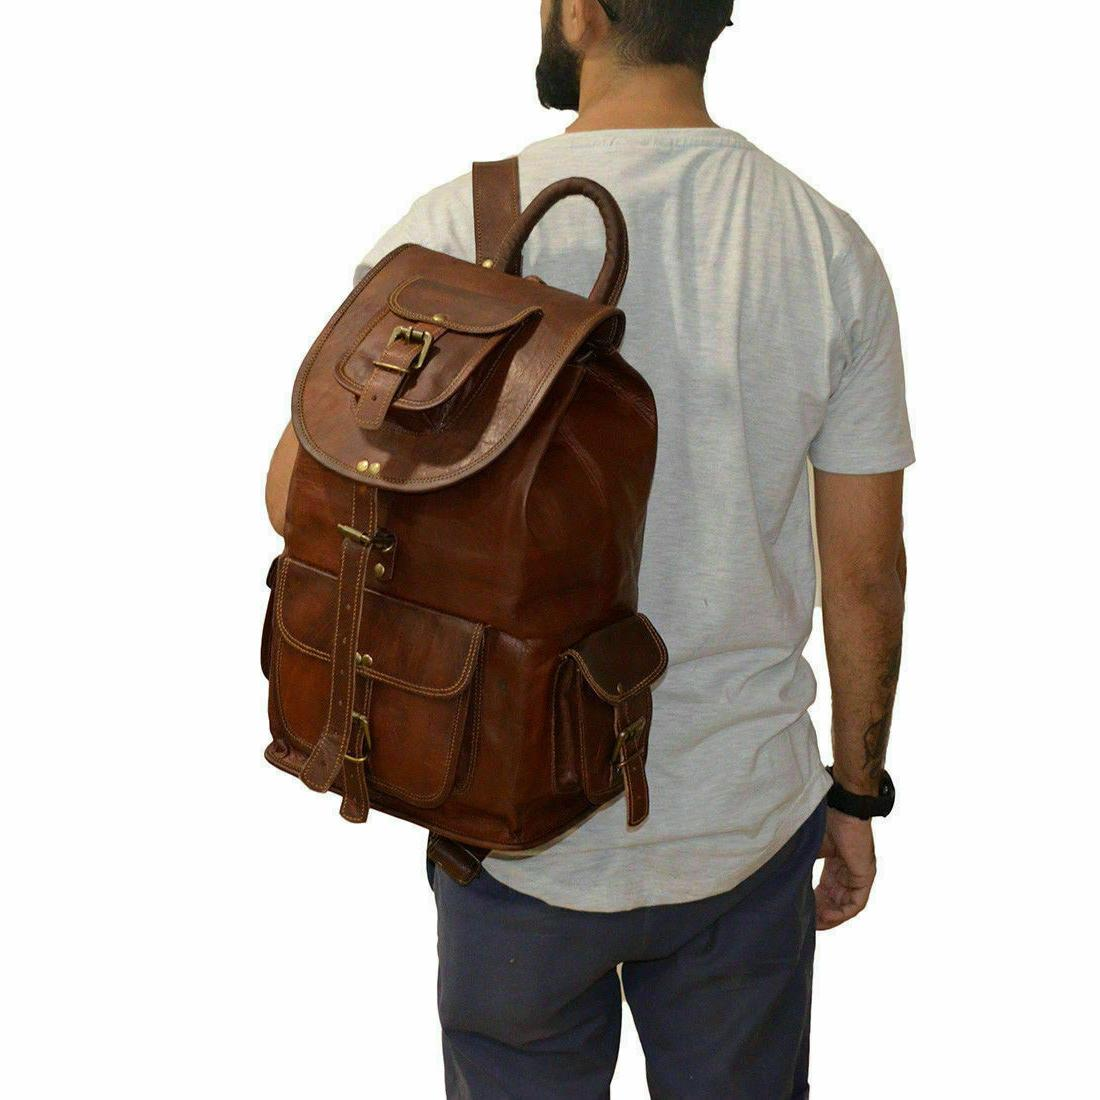 Vintage Backpack Rucksack Bag Satchel